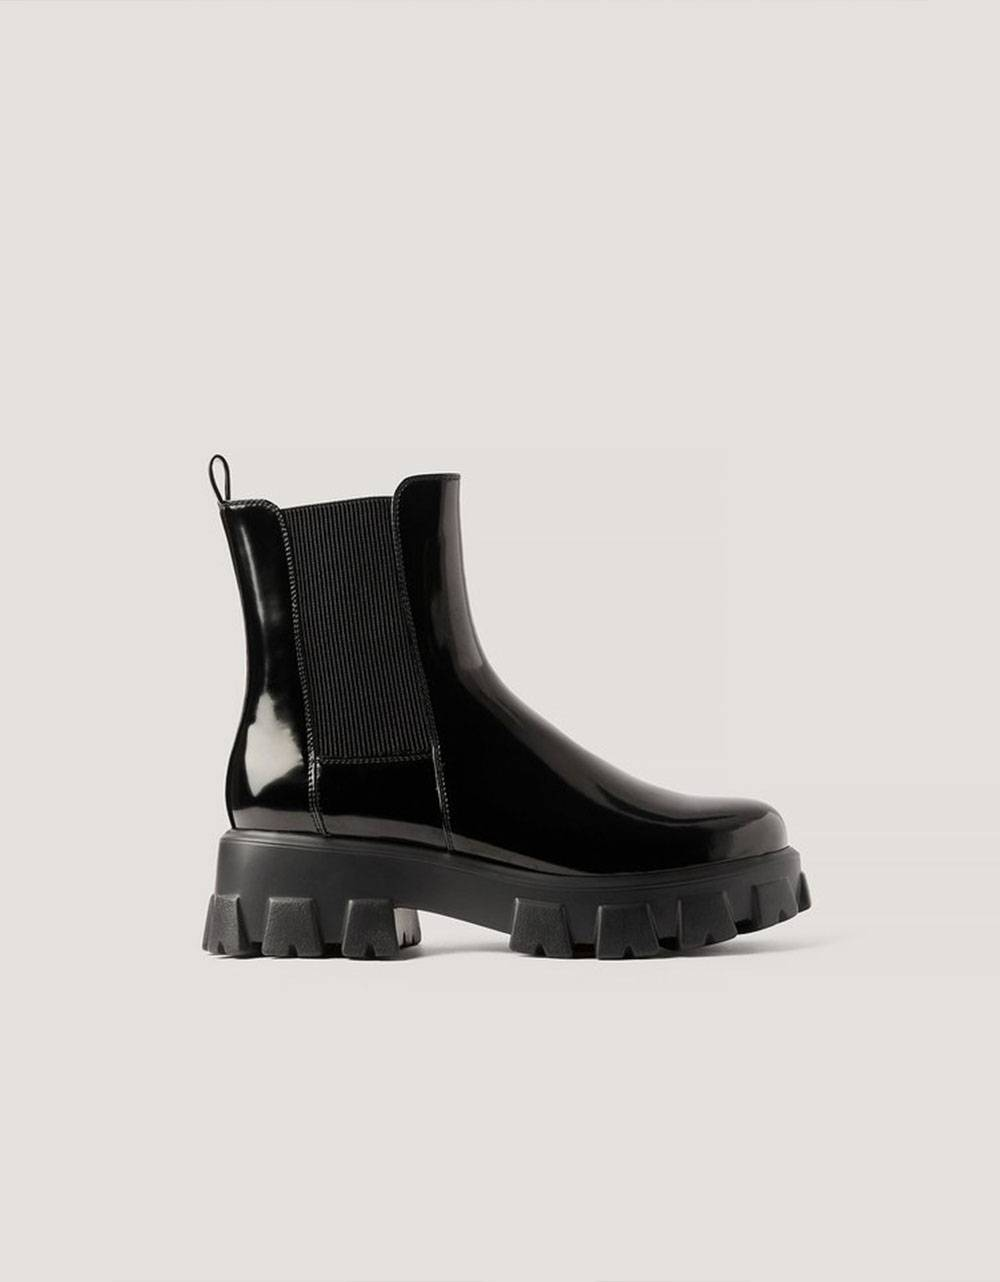 NA-KD chunky sole boots - black NA-KD Other shoes 95,00€